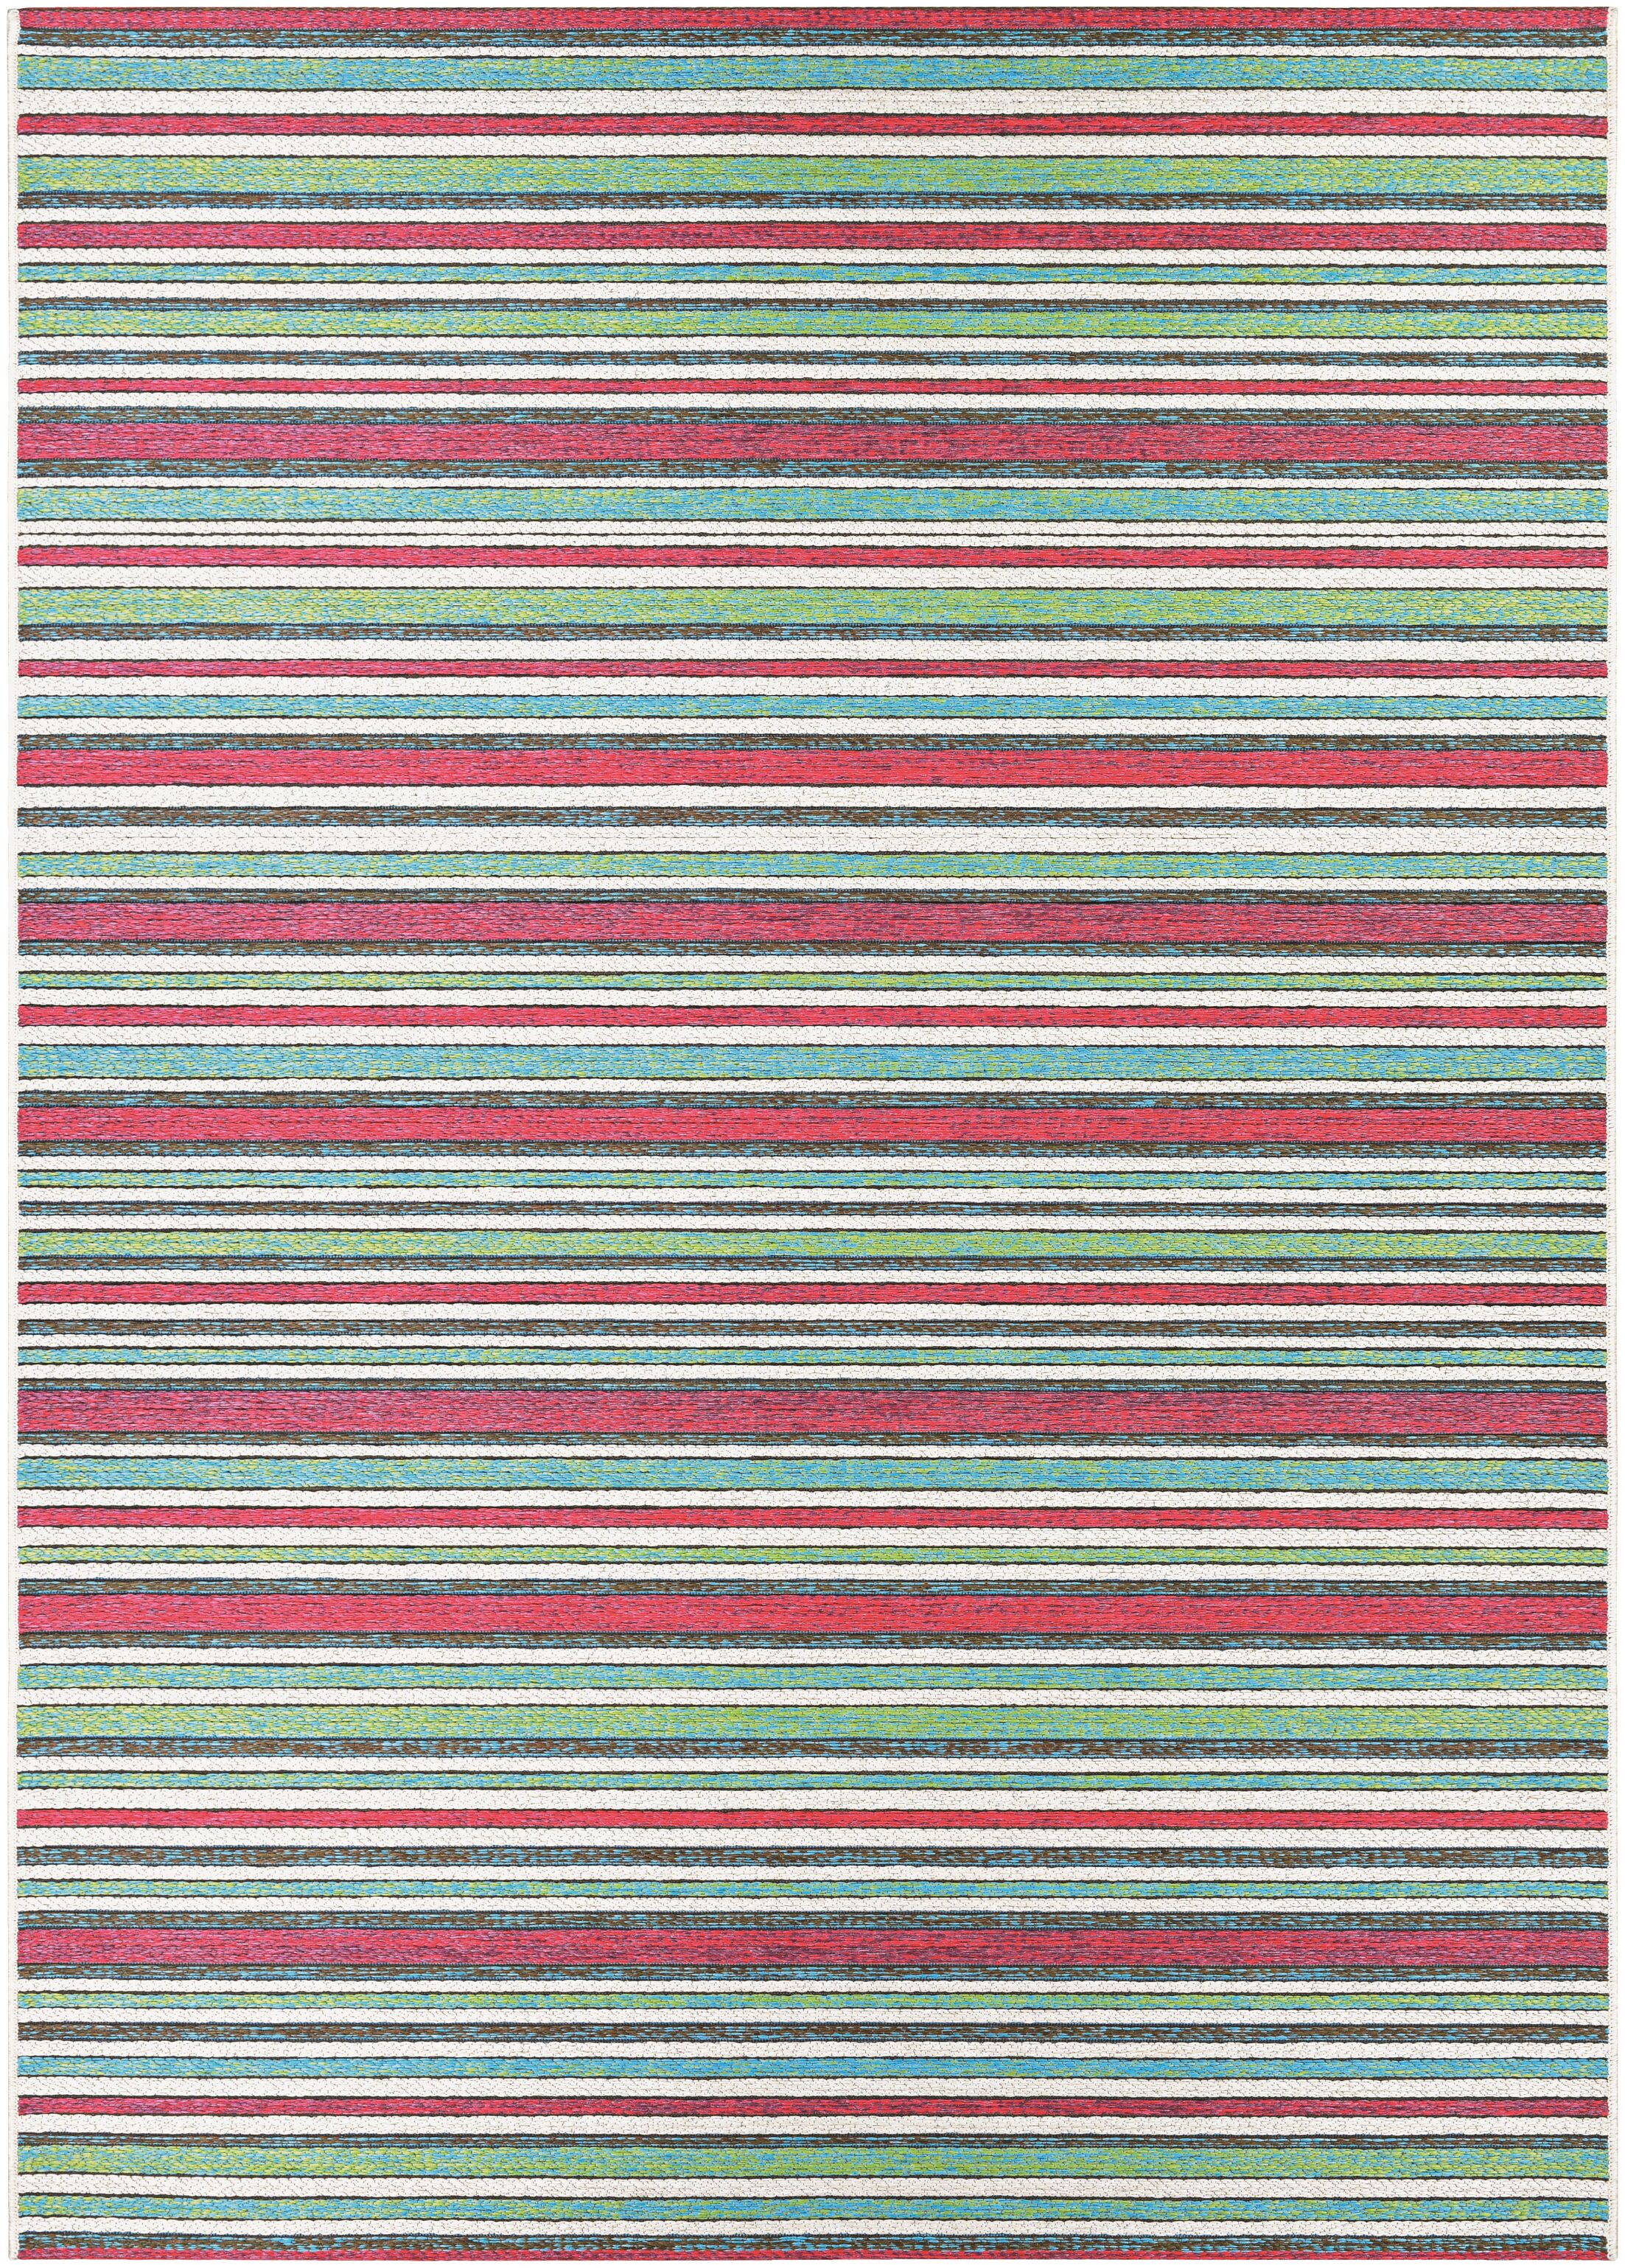 Colesberry Pink/Green Indoor/Outdoor Area Rug Rug Size: Rectangle 6'6